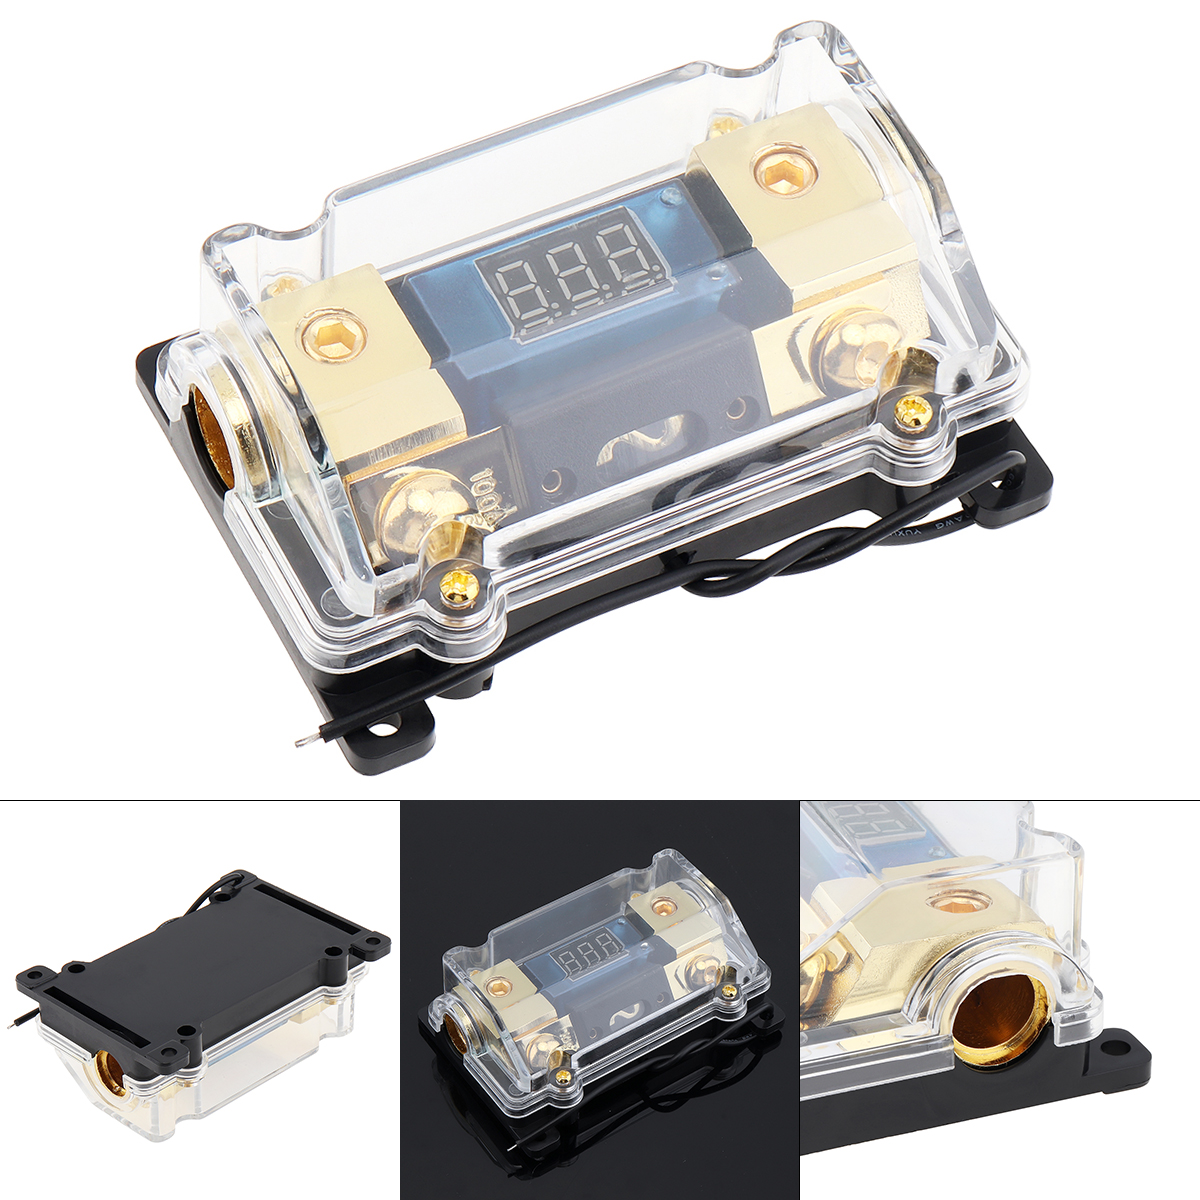 Universal 100A 1 IN Way Copper Plated Car Stereo Audio Power Fuse Holder with High-Definition Display for Boat Vehicle